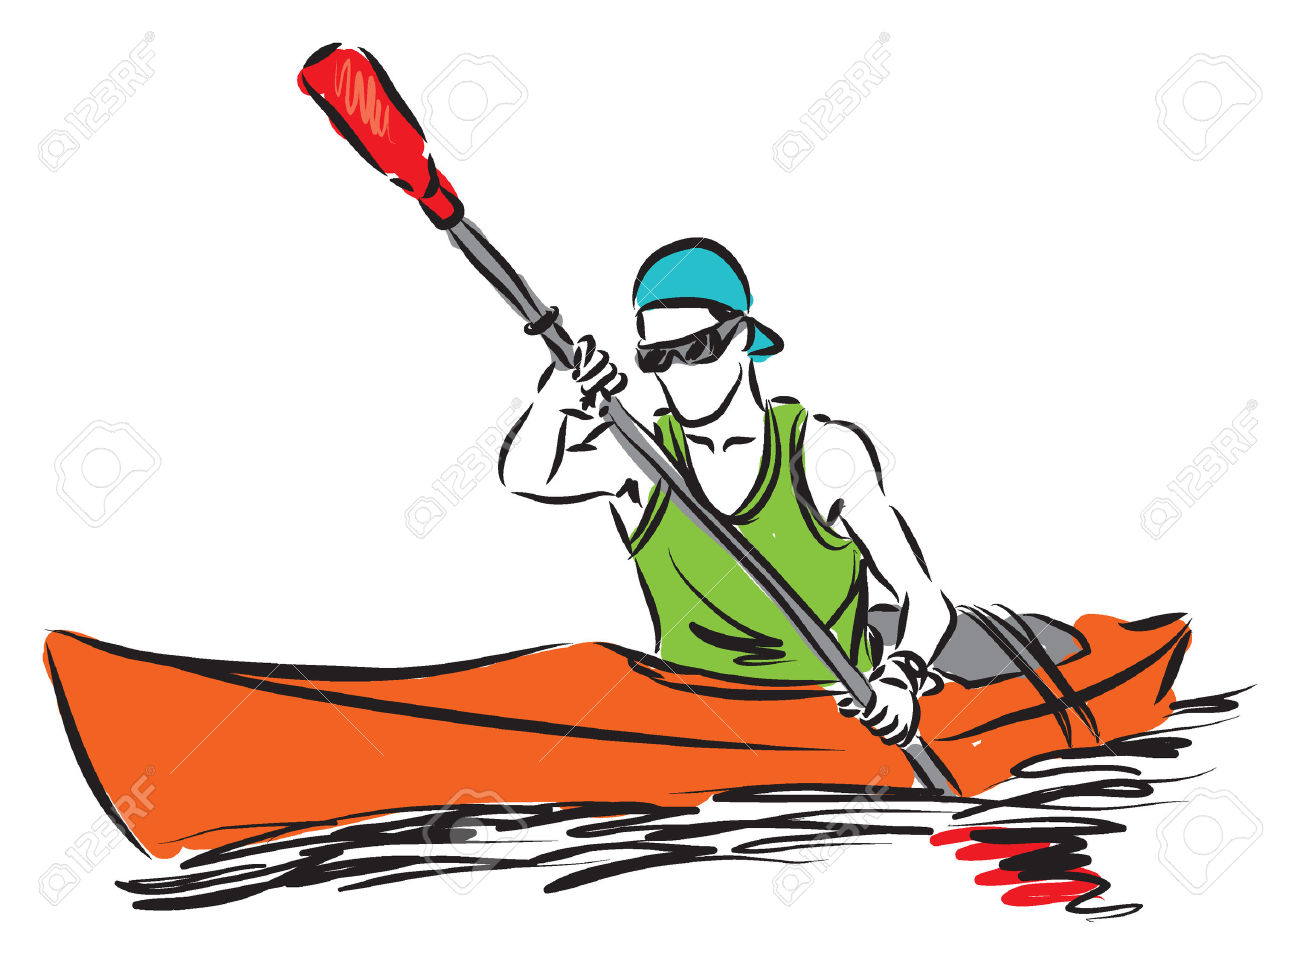 1300x965 Kayak Clipart Kayak Fishing